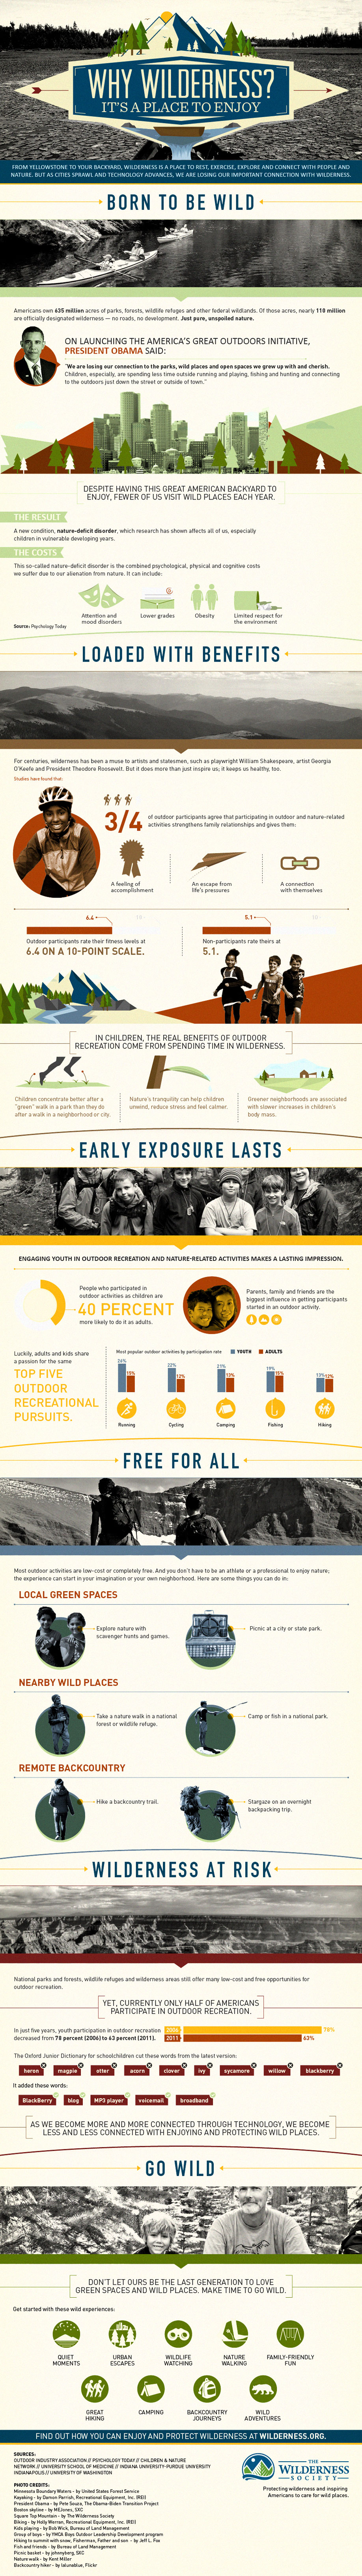 Infographic: Why Does Wilderness Matter?